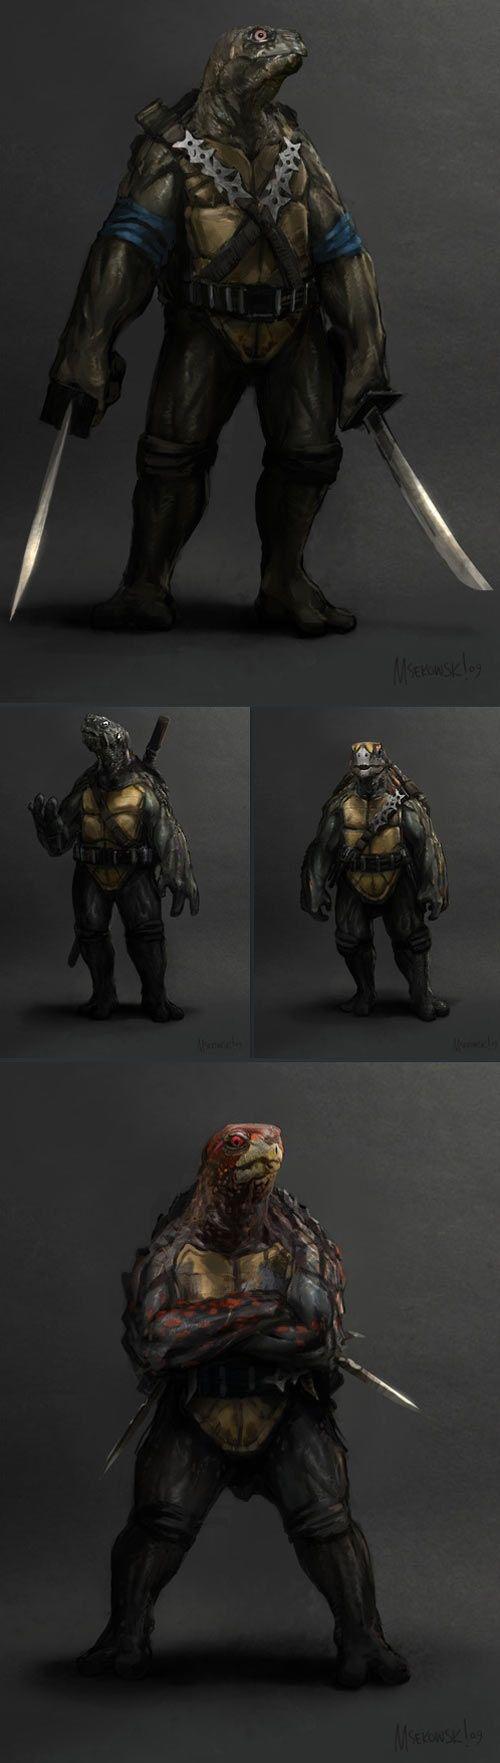 Realistic Teenage Mutant Ninja Turtles…this is kind of weirding me out